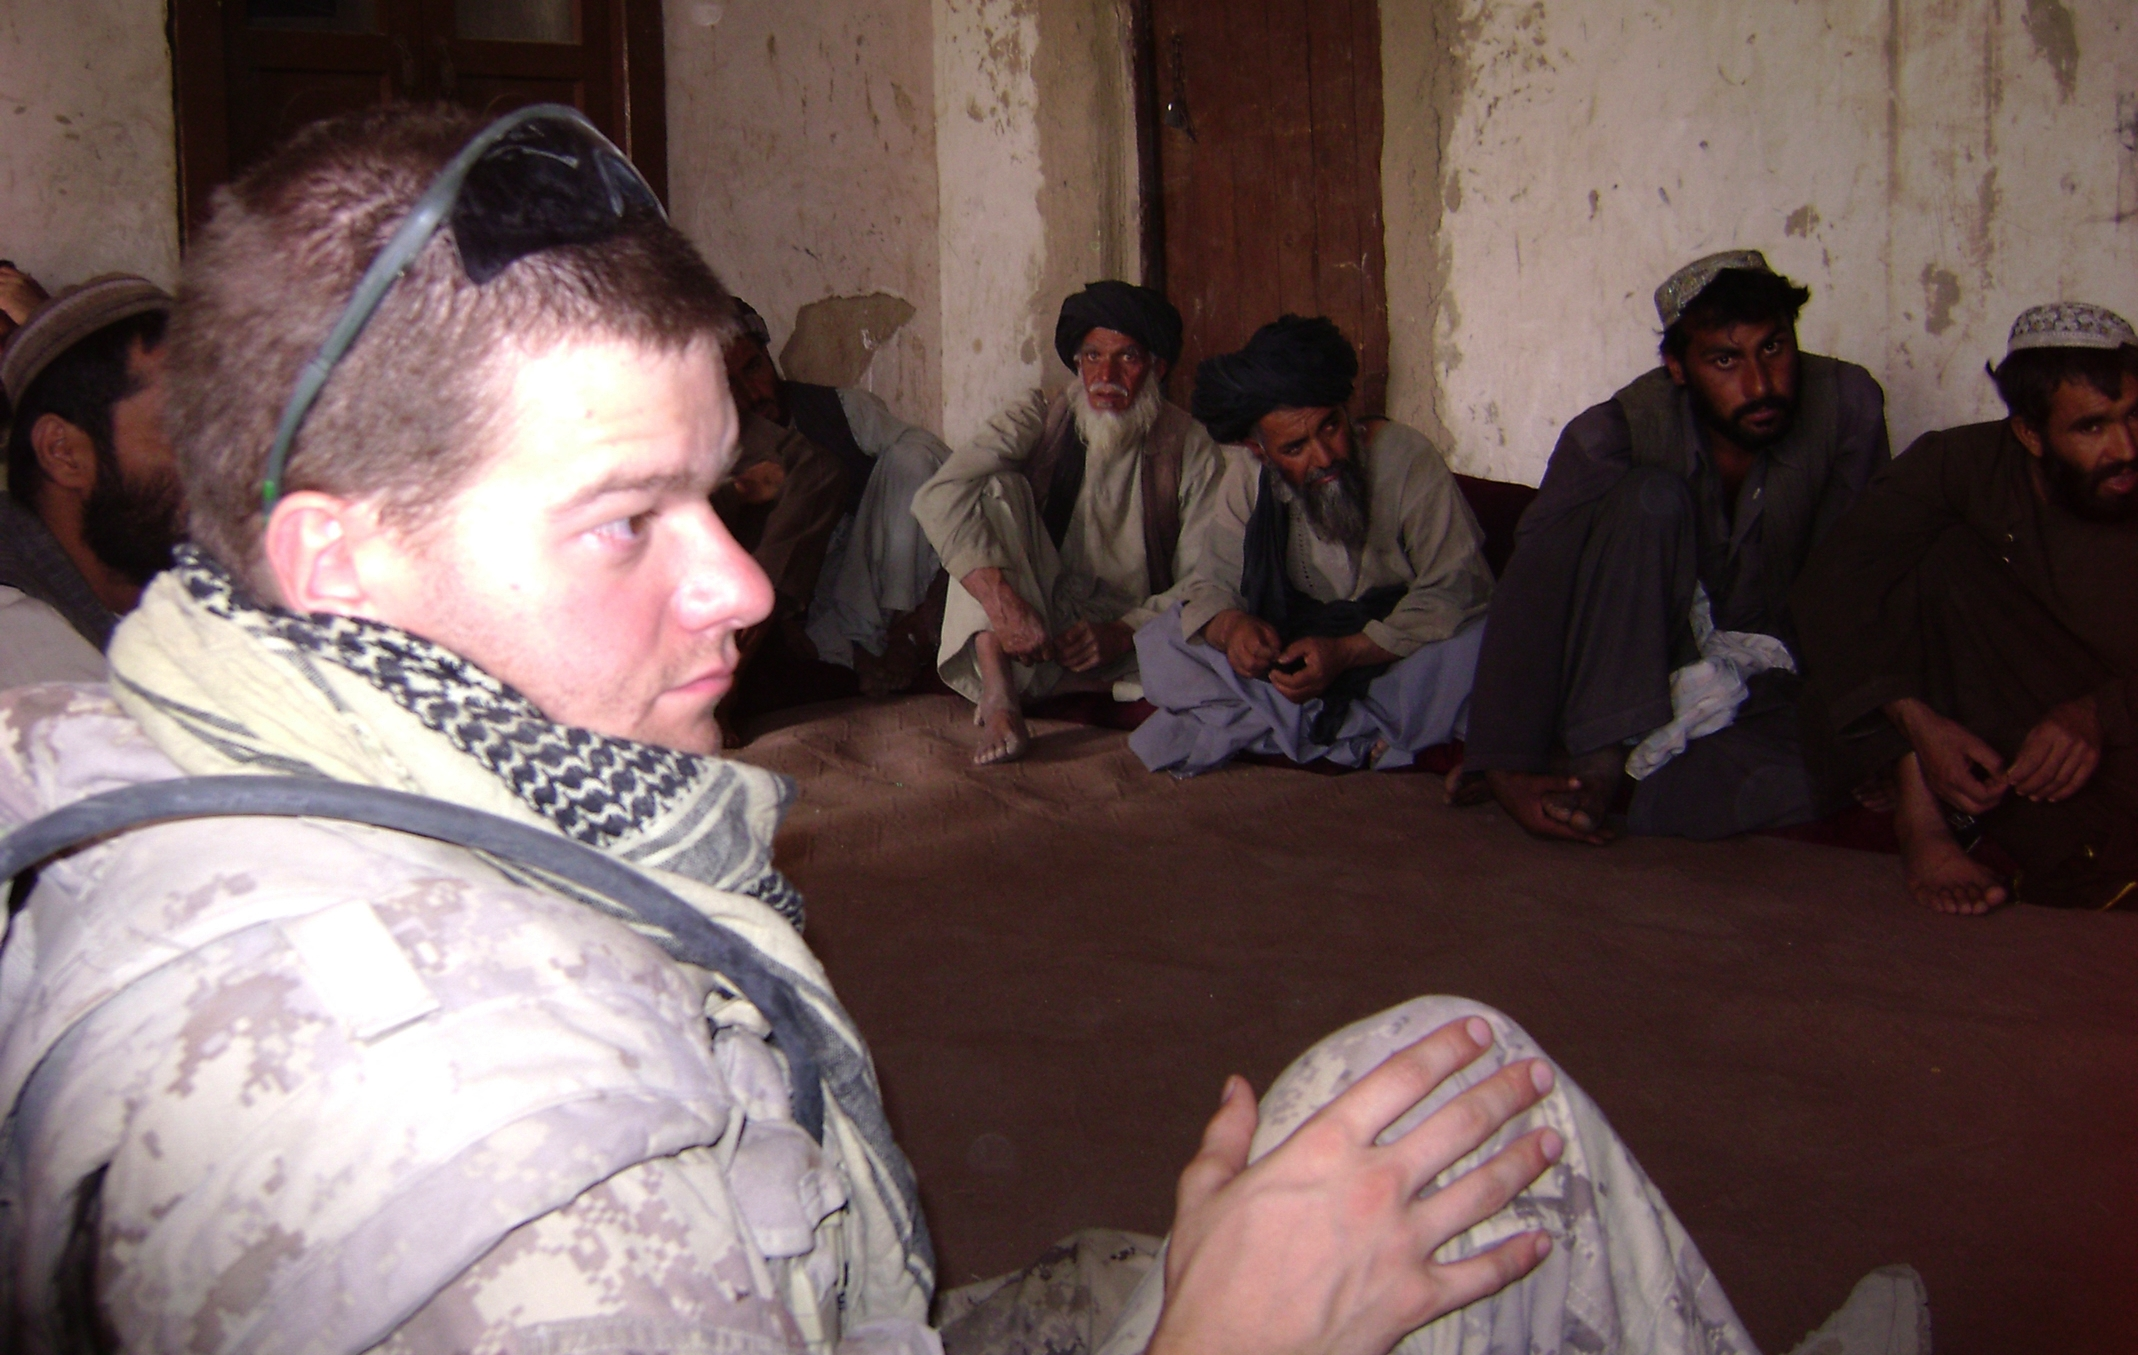 Captain Simon Mailloux discusses security and development concerns with the heads of villages surrounding the Canadian base at Sperwan Ghar in Afghanistan. The Canadians in Sperwan Ghar had been under sustained rocket and ambush attacks and winning the support of the population was key to their effort. Captain Mailloux was injured in an improvised explosive device (IED) in Afghanistan in 2007, which resulted in the loss of his left leg.